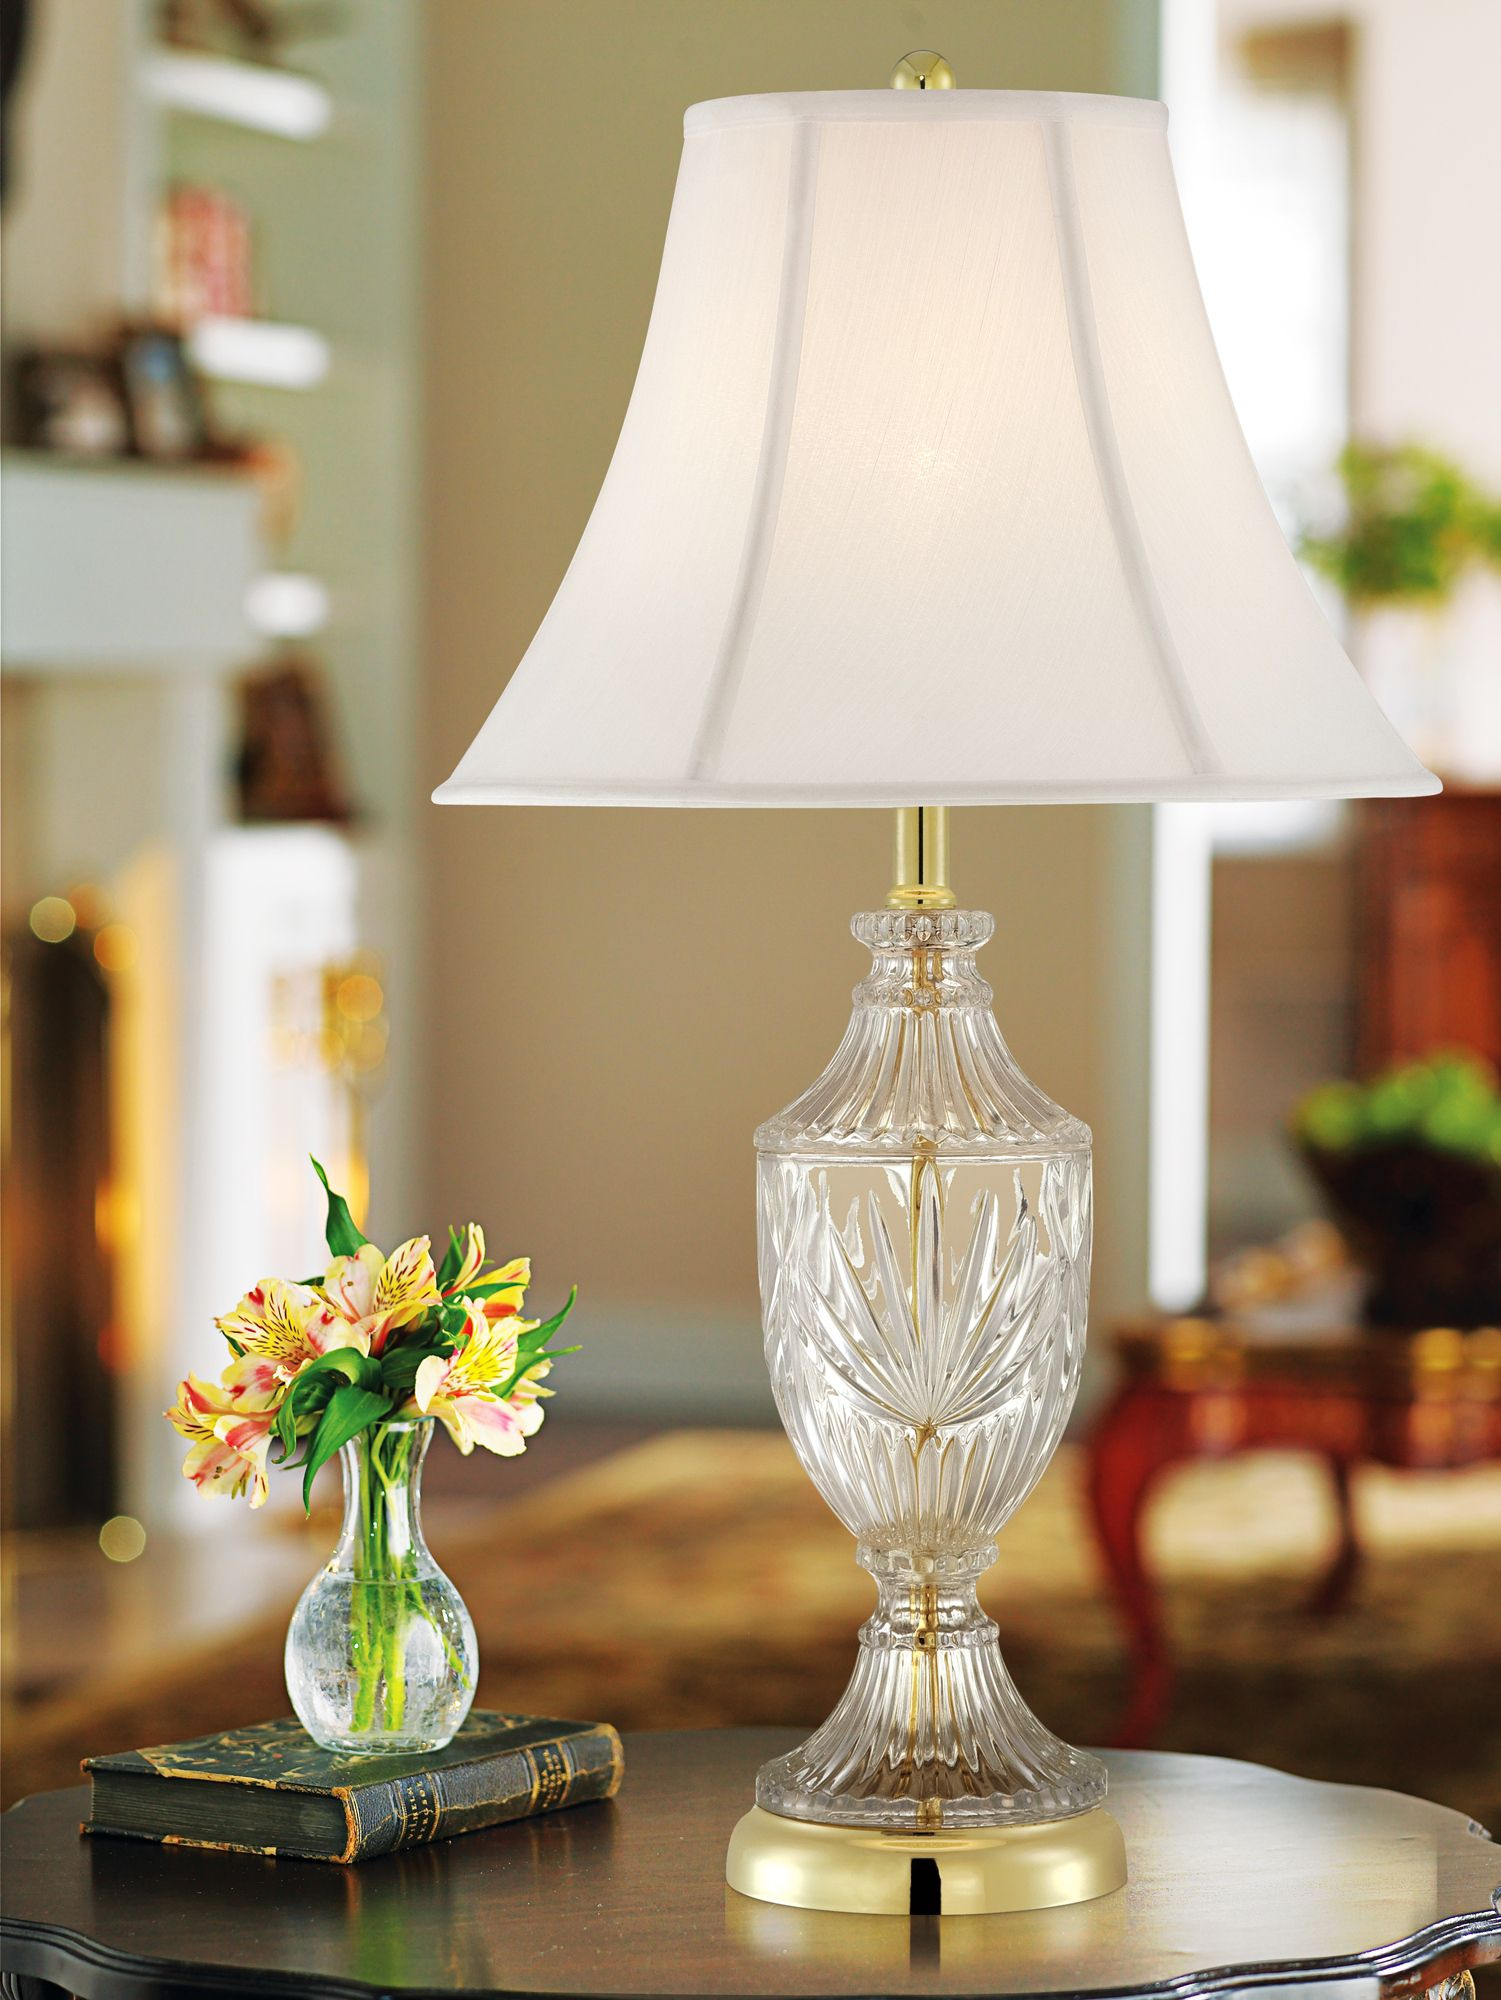 Regency Hill Traditional Table Lamp Cut Glass Urn Brass White Cream Bell  Shade For Living Room Family Bedroom Bedside Nightstand   Walmart.com